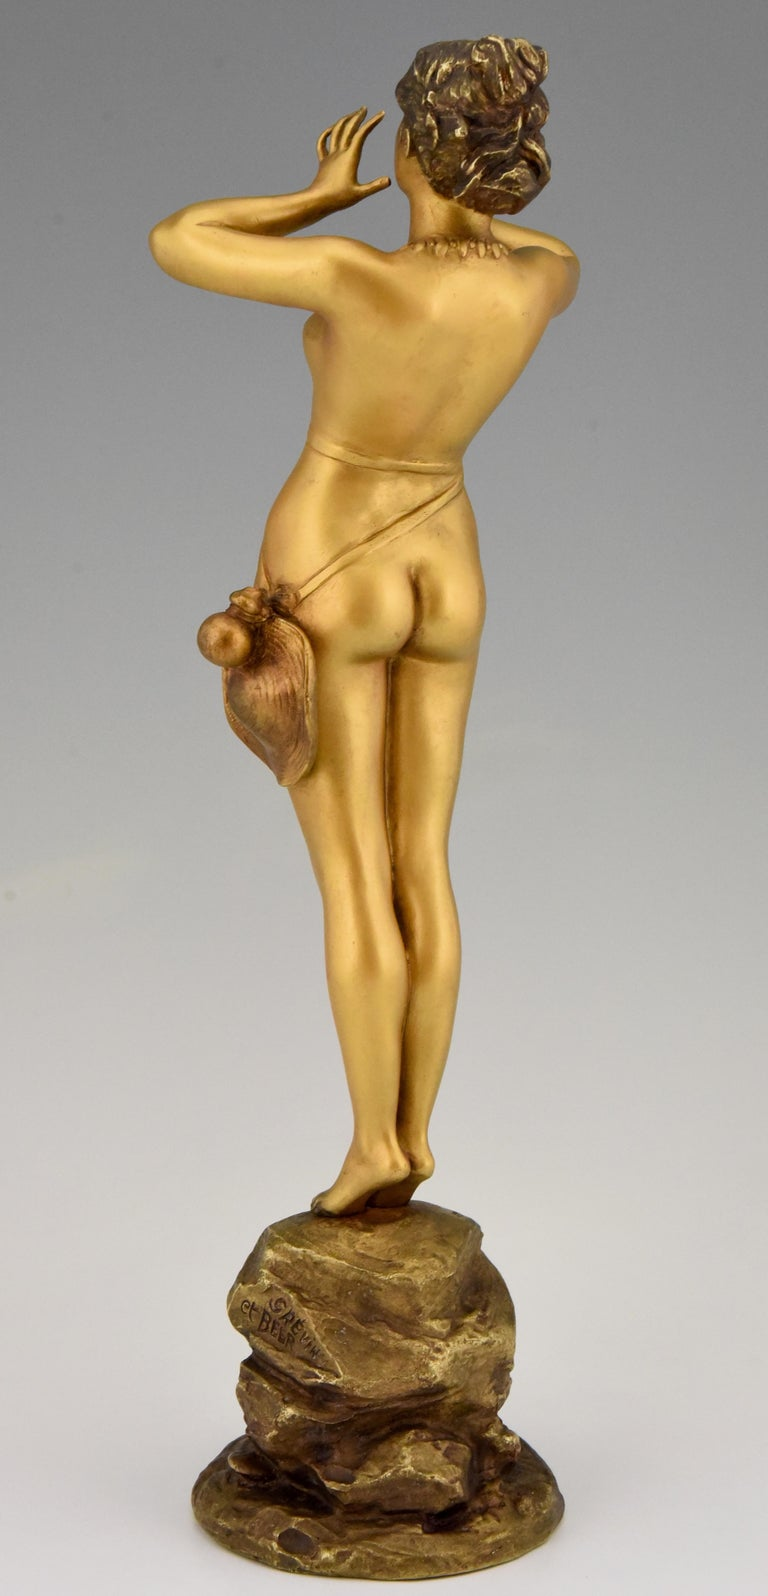 Patinated Art Nouveau Bronze Sculpture Calling Nude Lady Alfred Grevin and Friedrich Beer